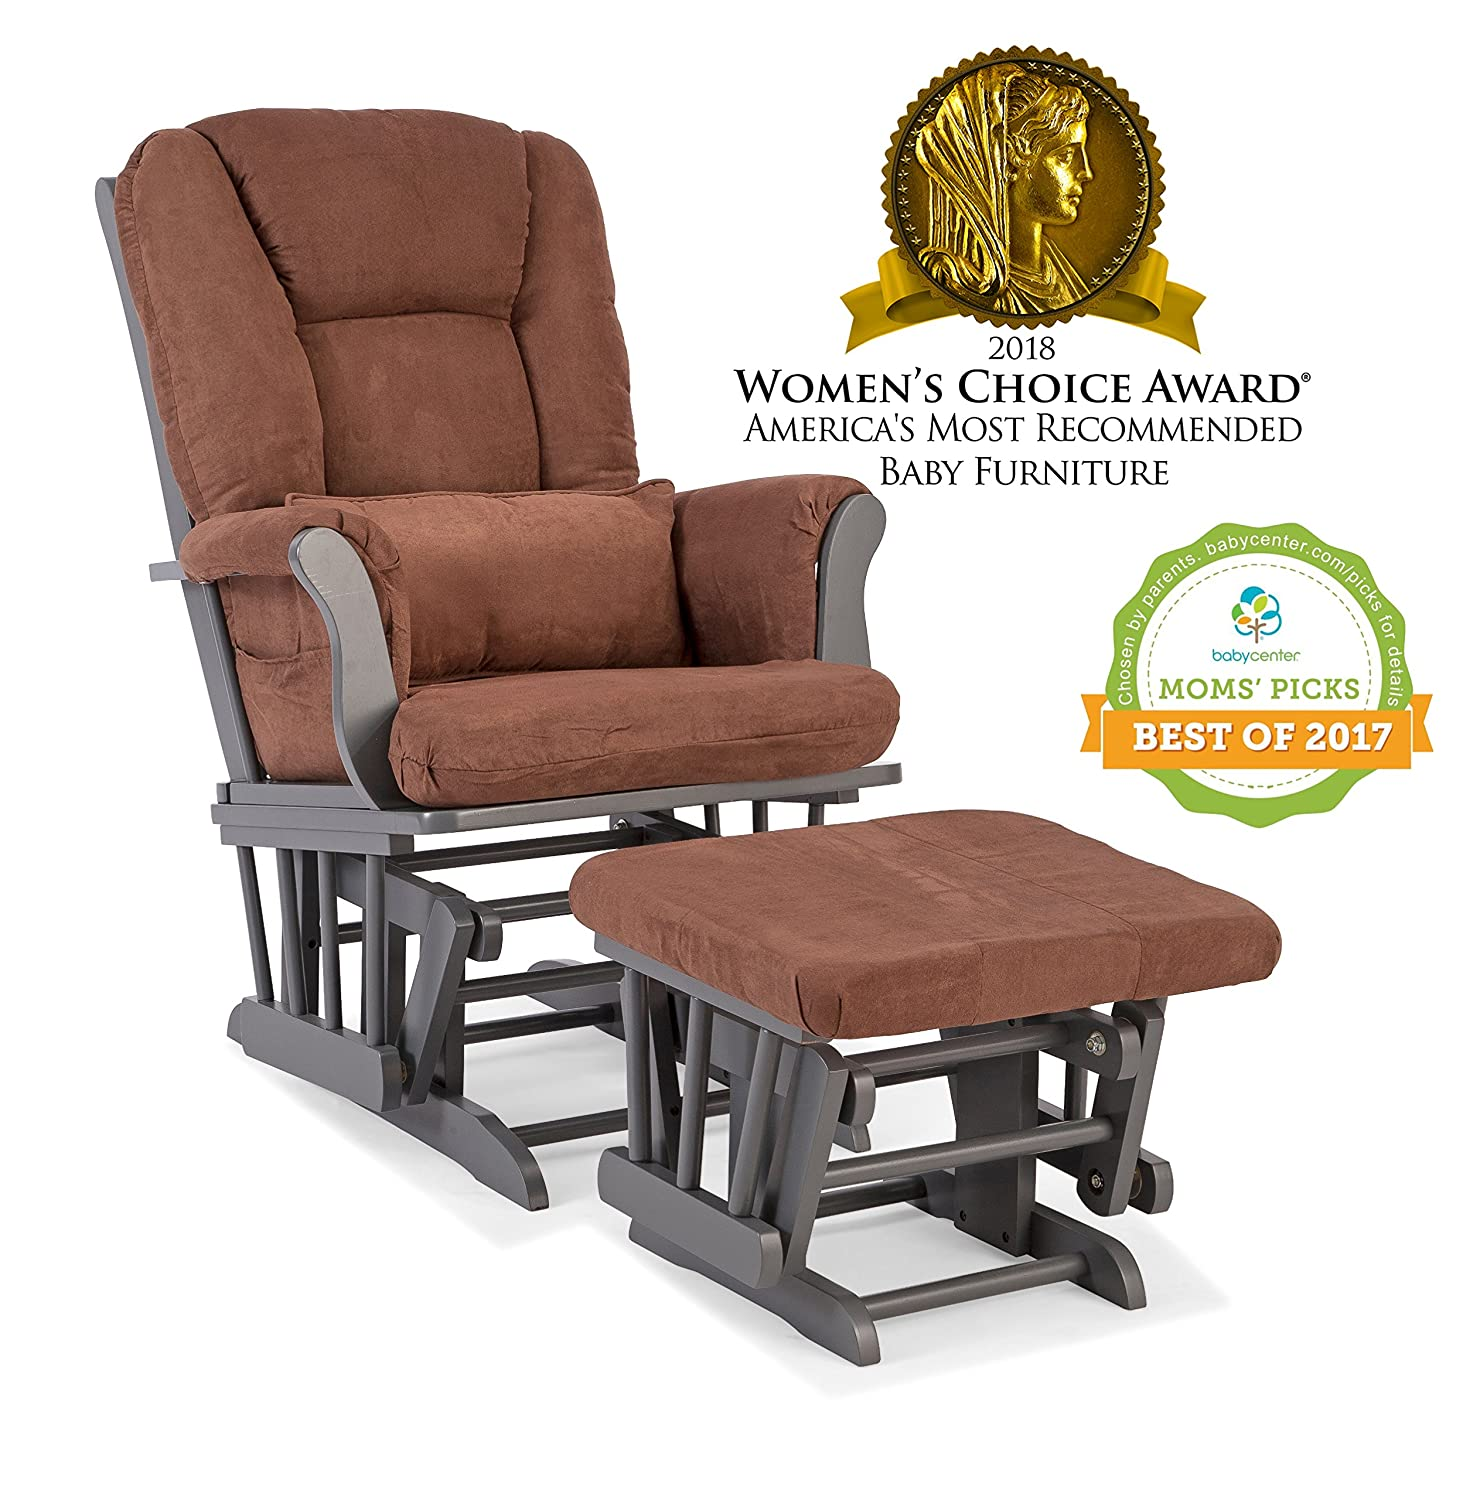 Awesome Storkcraft Tuscany Custom Glider And Ottoman With Free Lumbar Pillow Gray Chocolate Squirreltailoven Fun Painted Chair Ideas Images Squirreltailovenorg